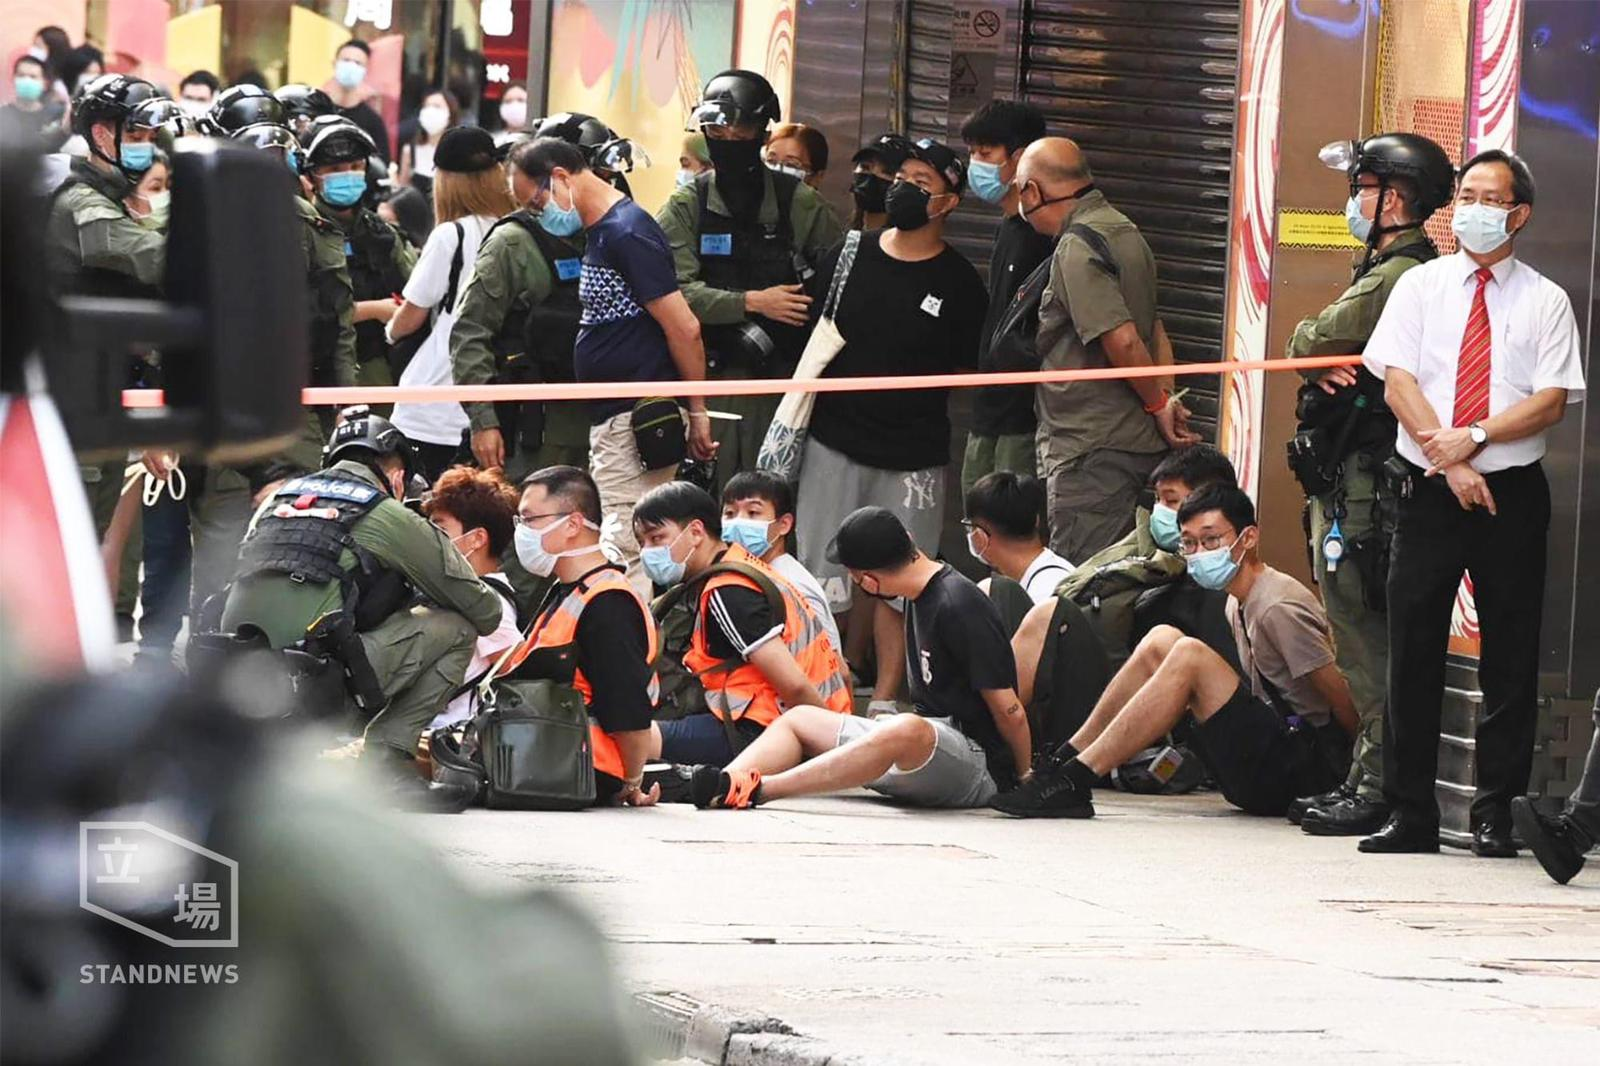 Read more about the article Police fire Pepper Balls on Hong Kong Pro-Democracy Protesters.